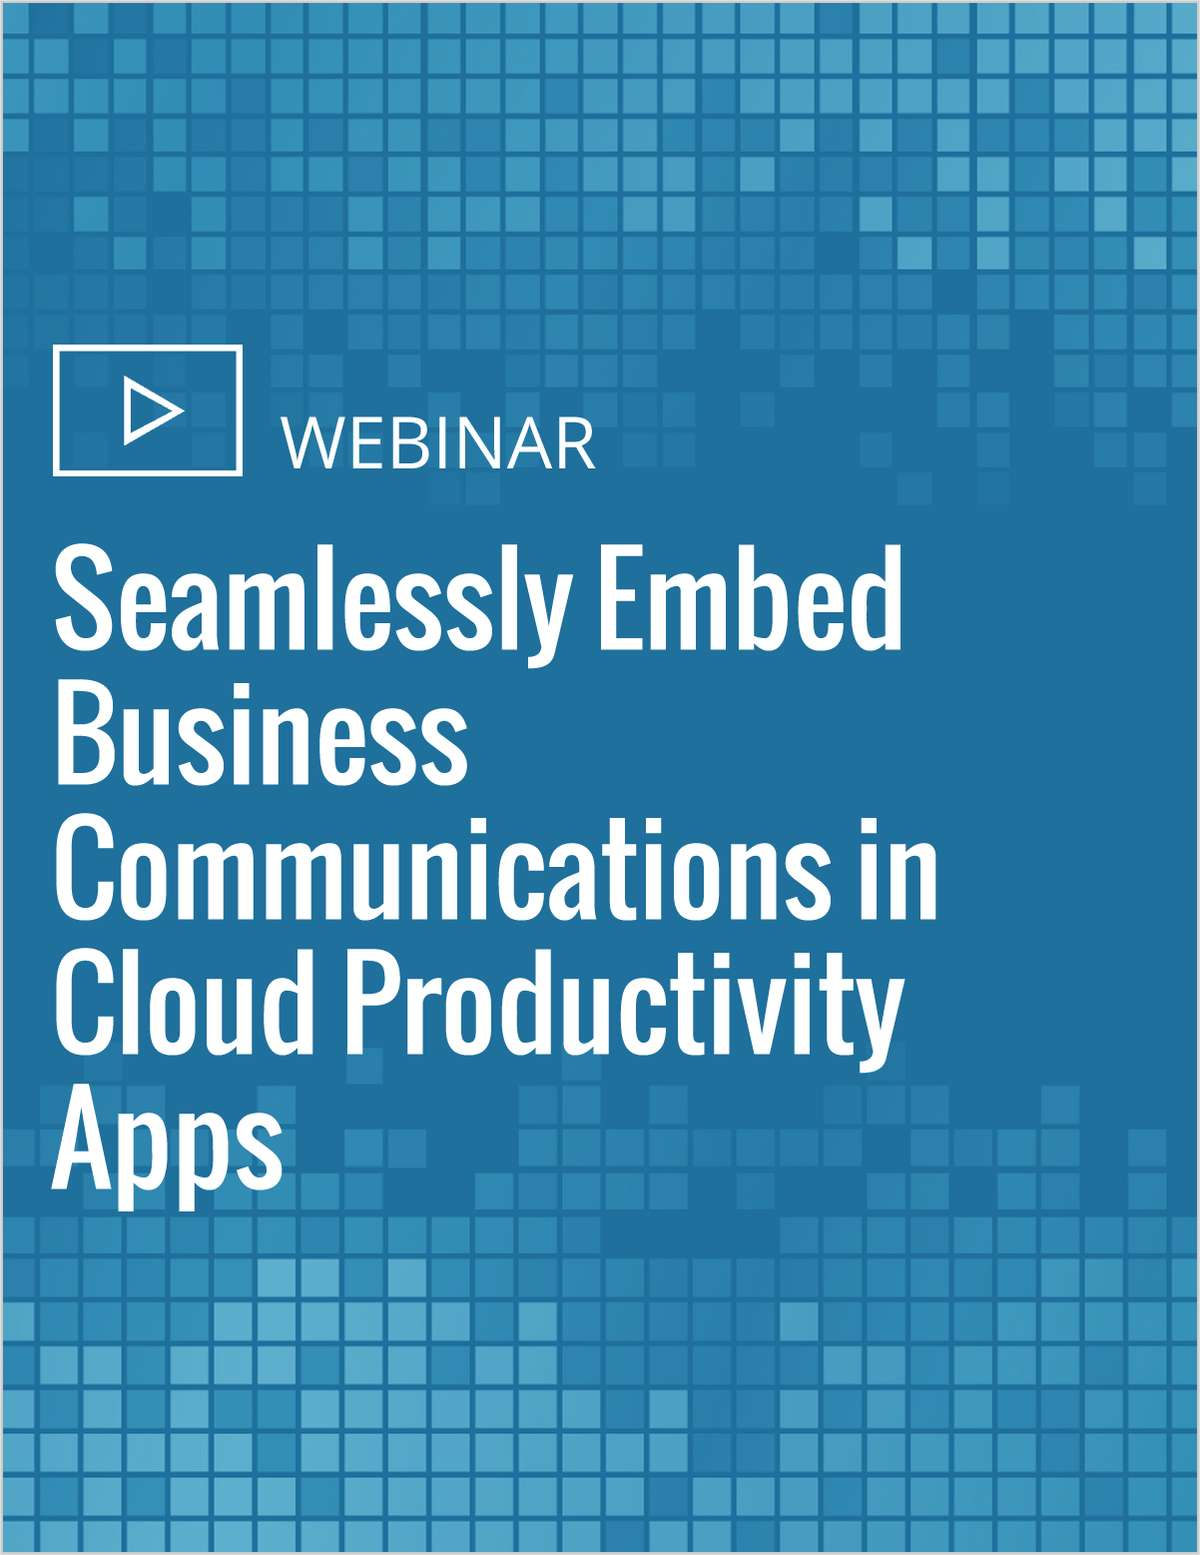 Seamlessly Embed Business Communications in Cloud Productivity Apps